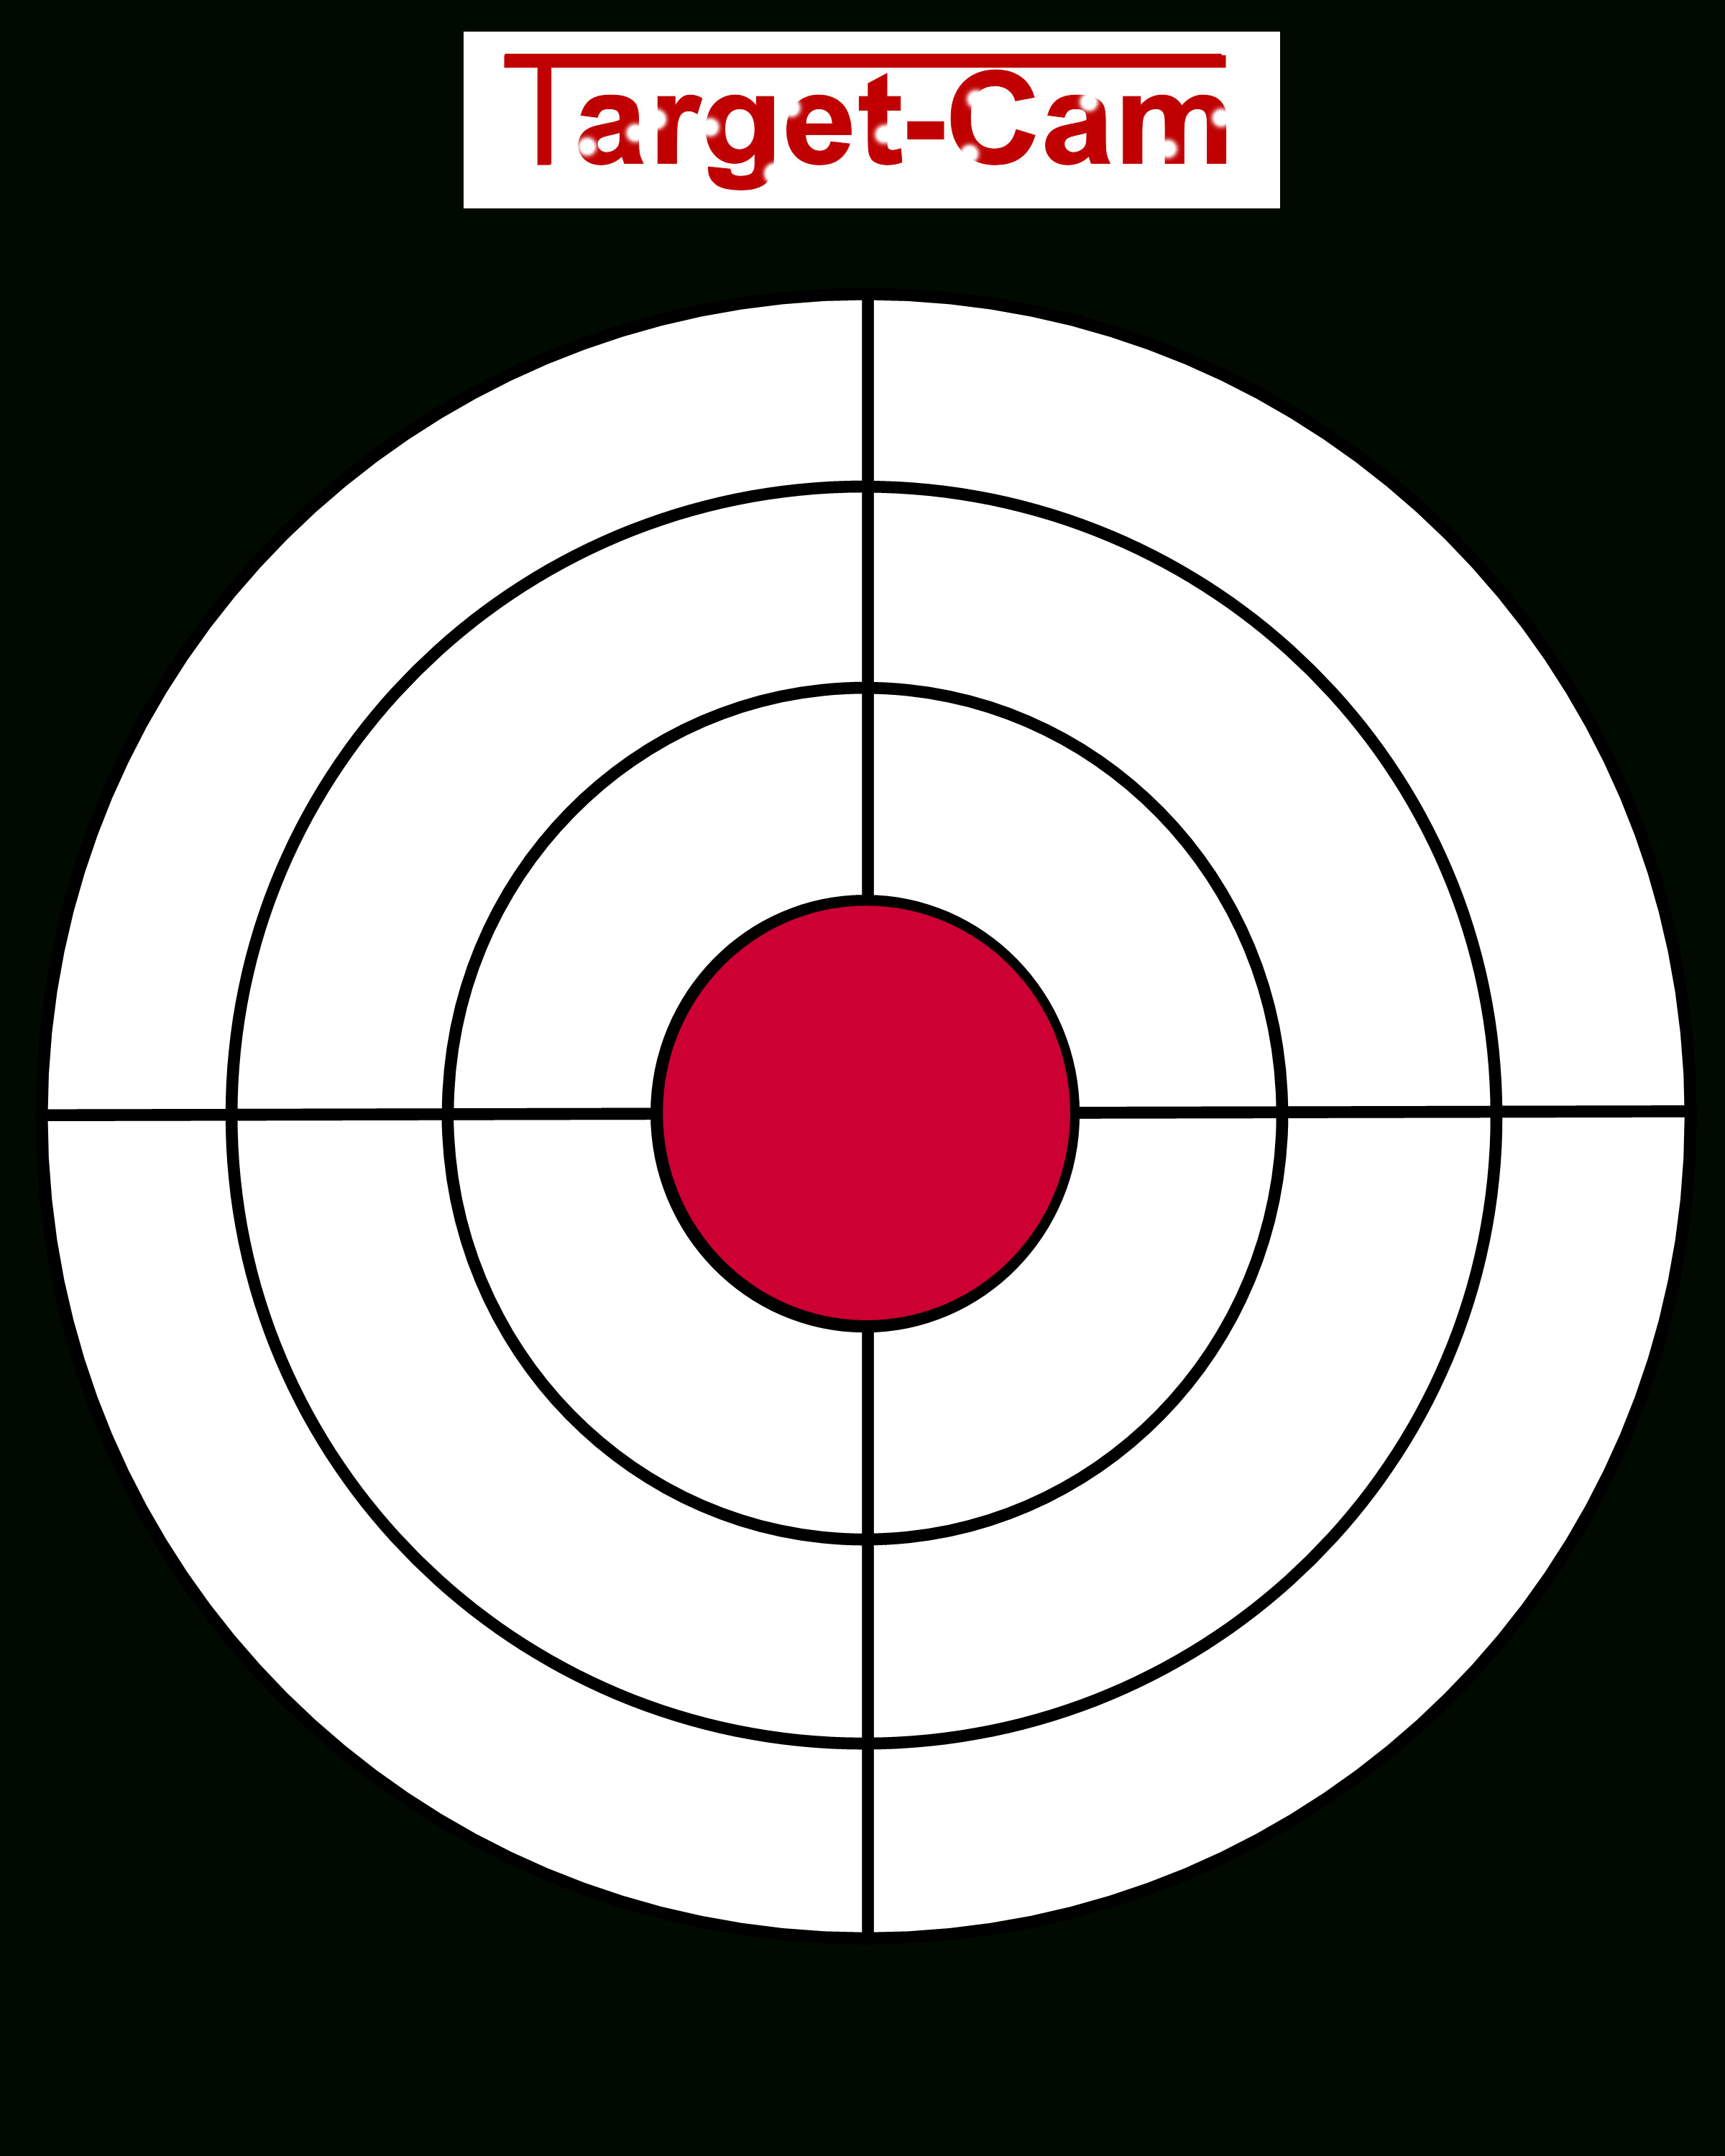 """Free Gun Targets To Print   New """"target-Cam"""" Rifle And Hand Gun - Free Printable Targets For Shooting Practice"""